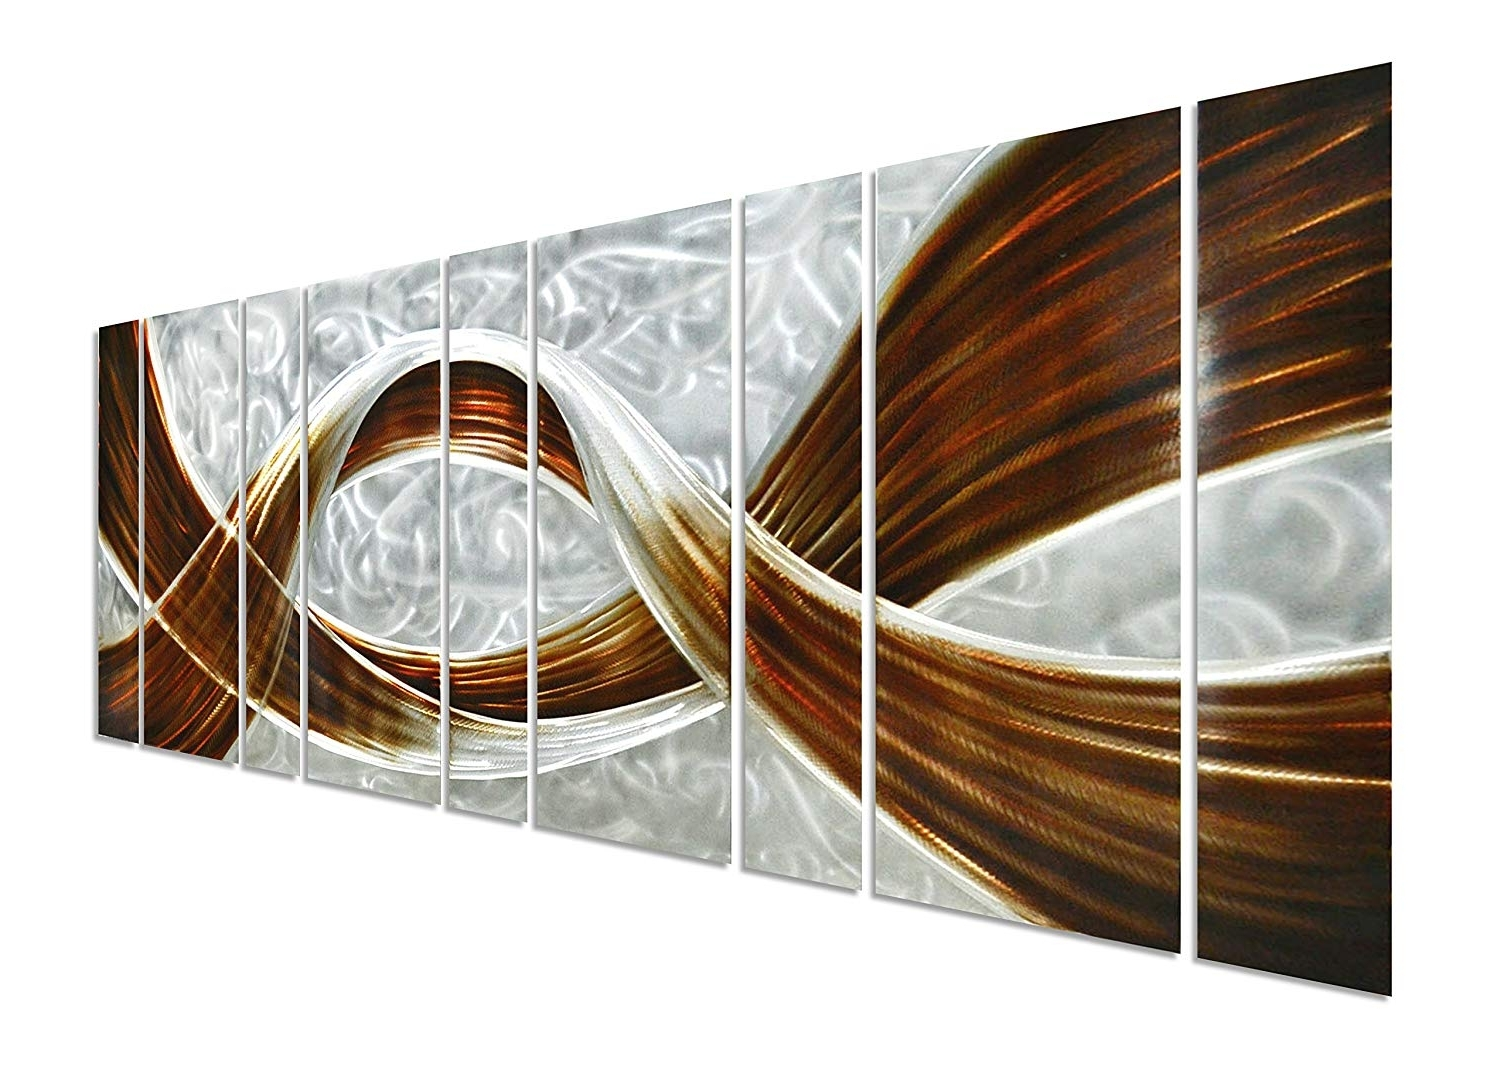 Famous Amazon: Pure Art Caramel Desire Metal Wall Art, Giant Scale With Regard To Large Metal Wall Art (View 2 of 15)